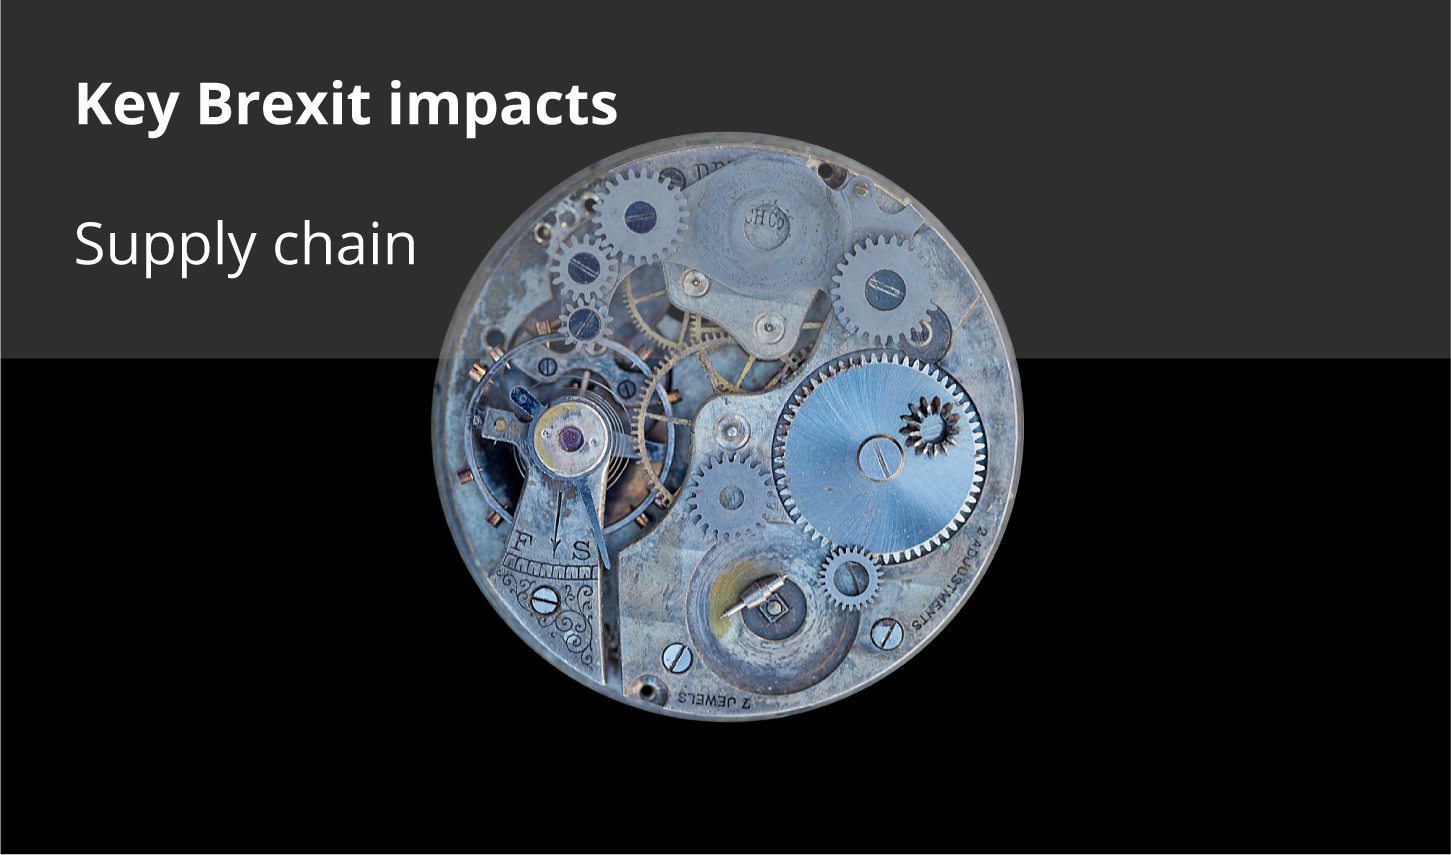 Key Brexit impacts: Supply chain